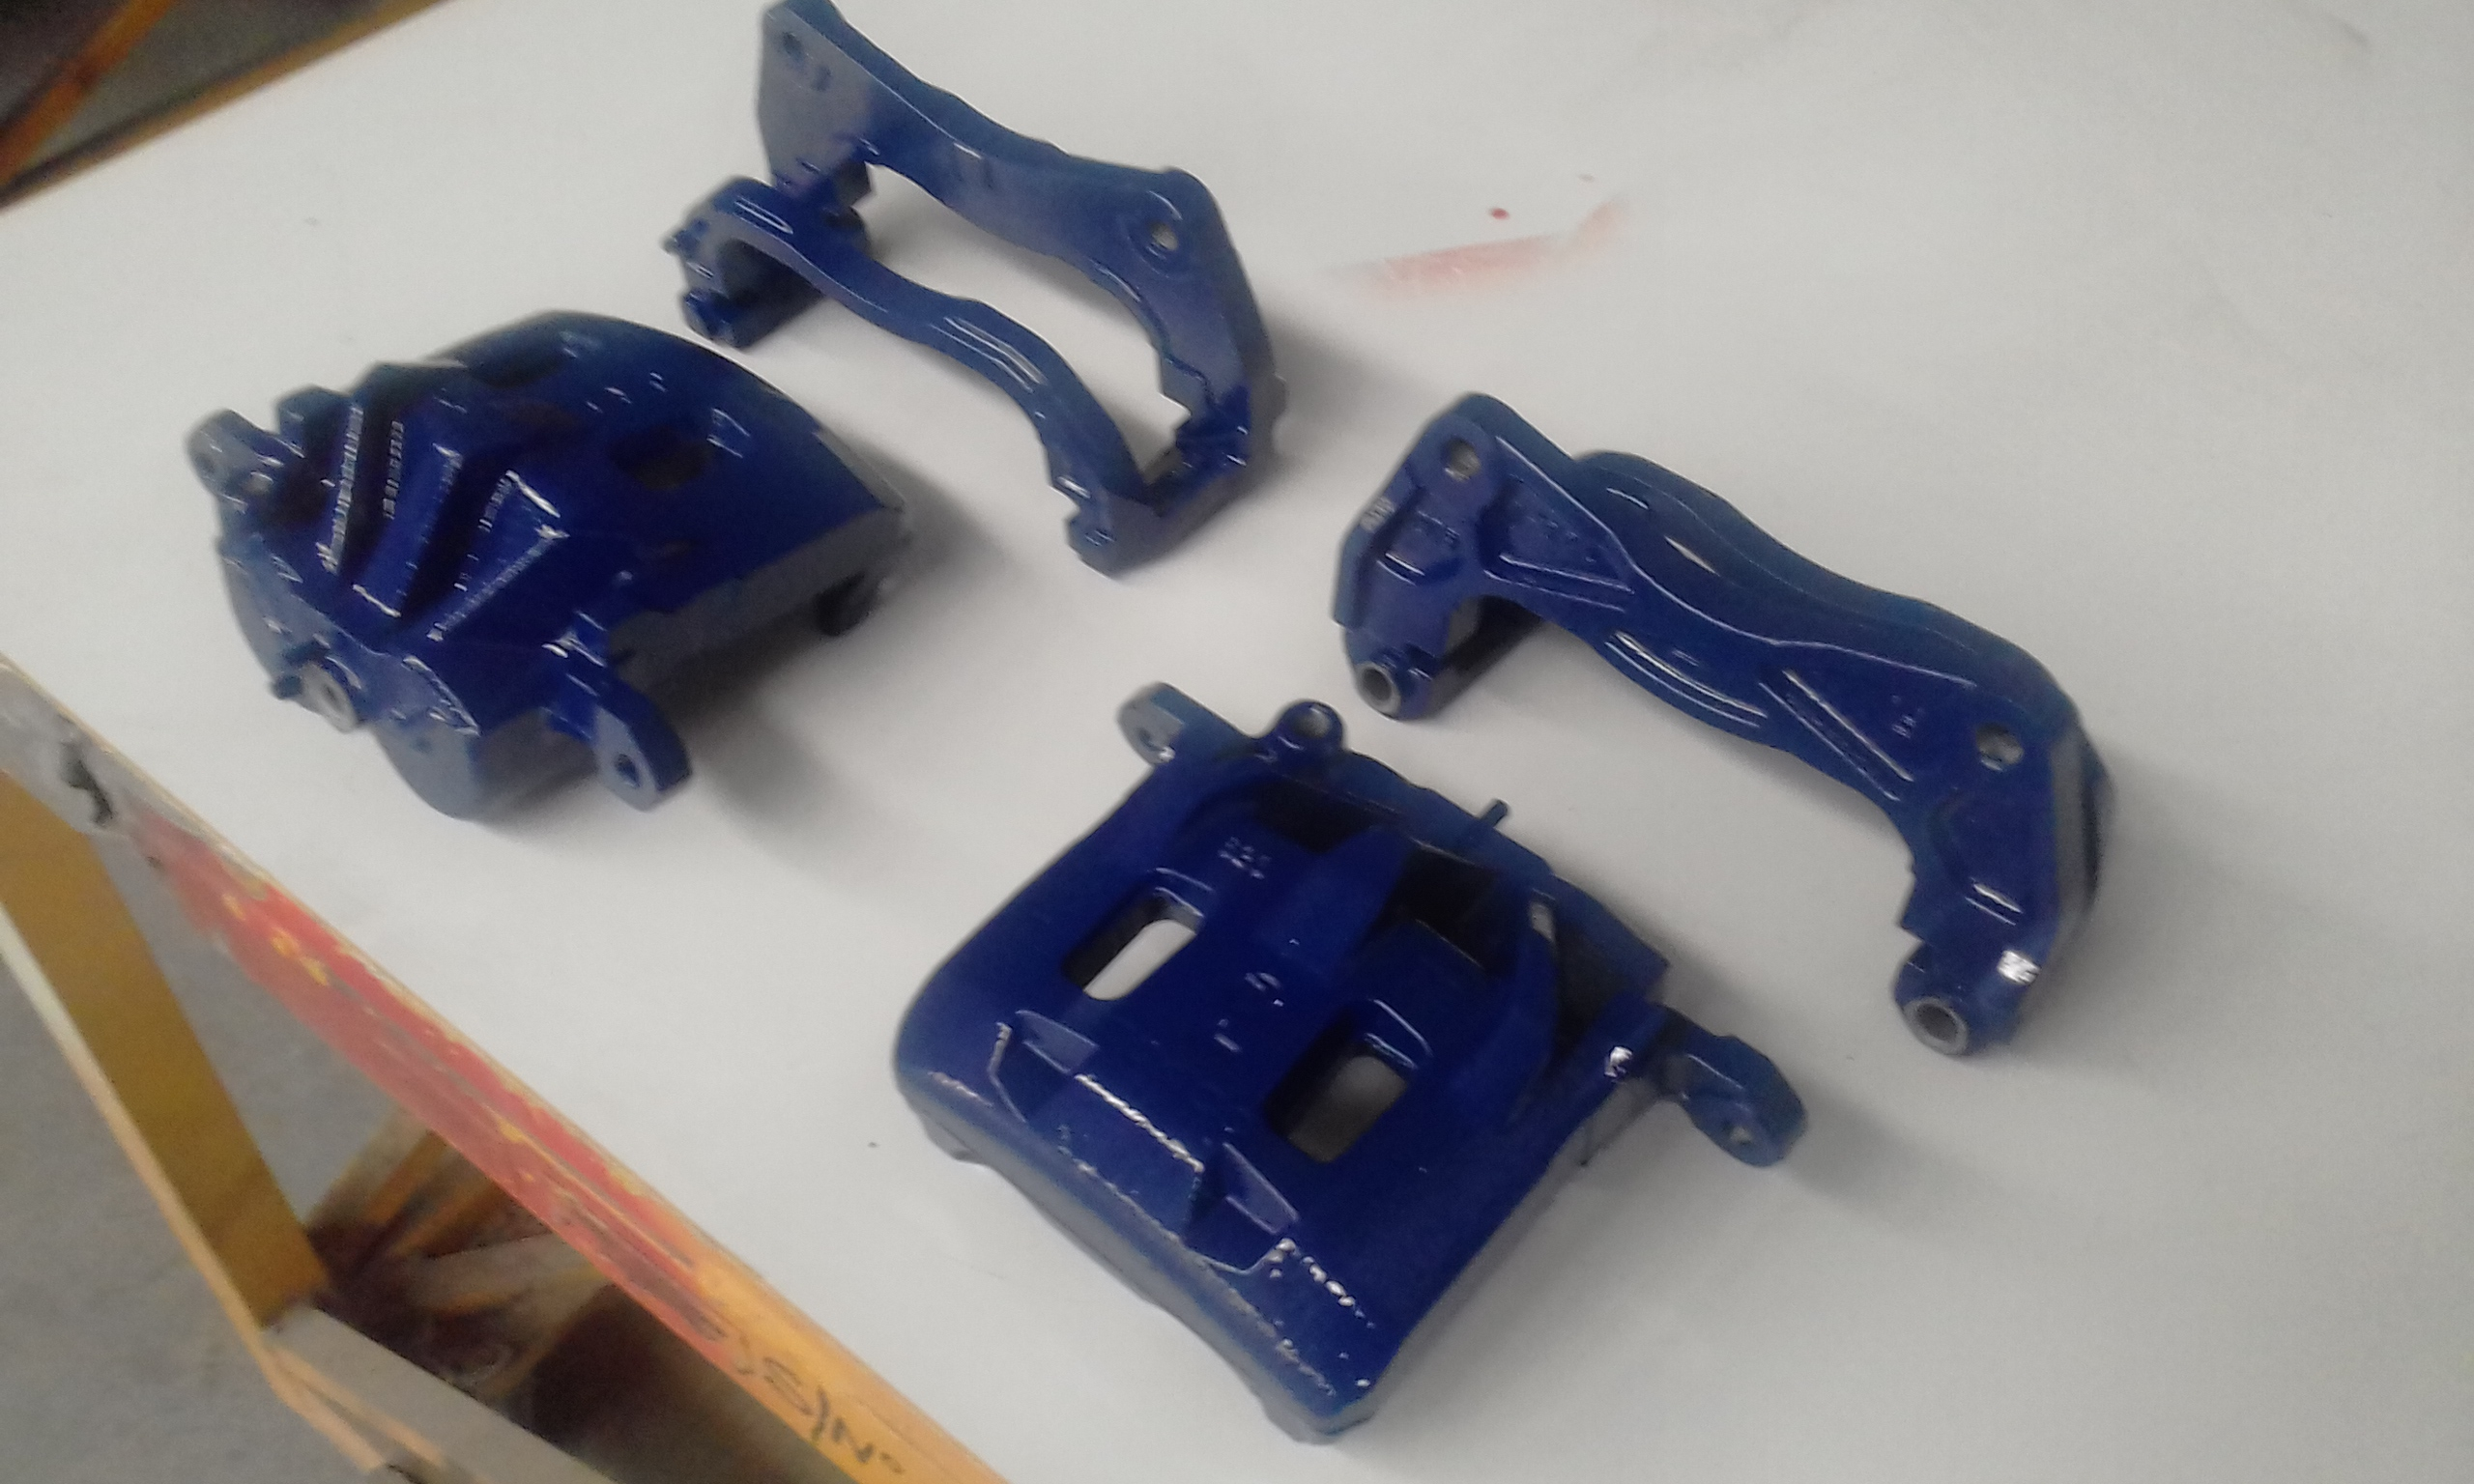 Powder coating - Oxytec space blue - subaru break units (2)